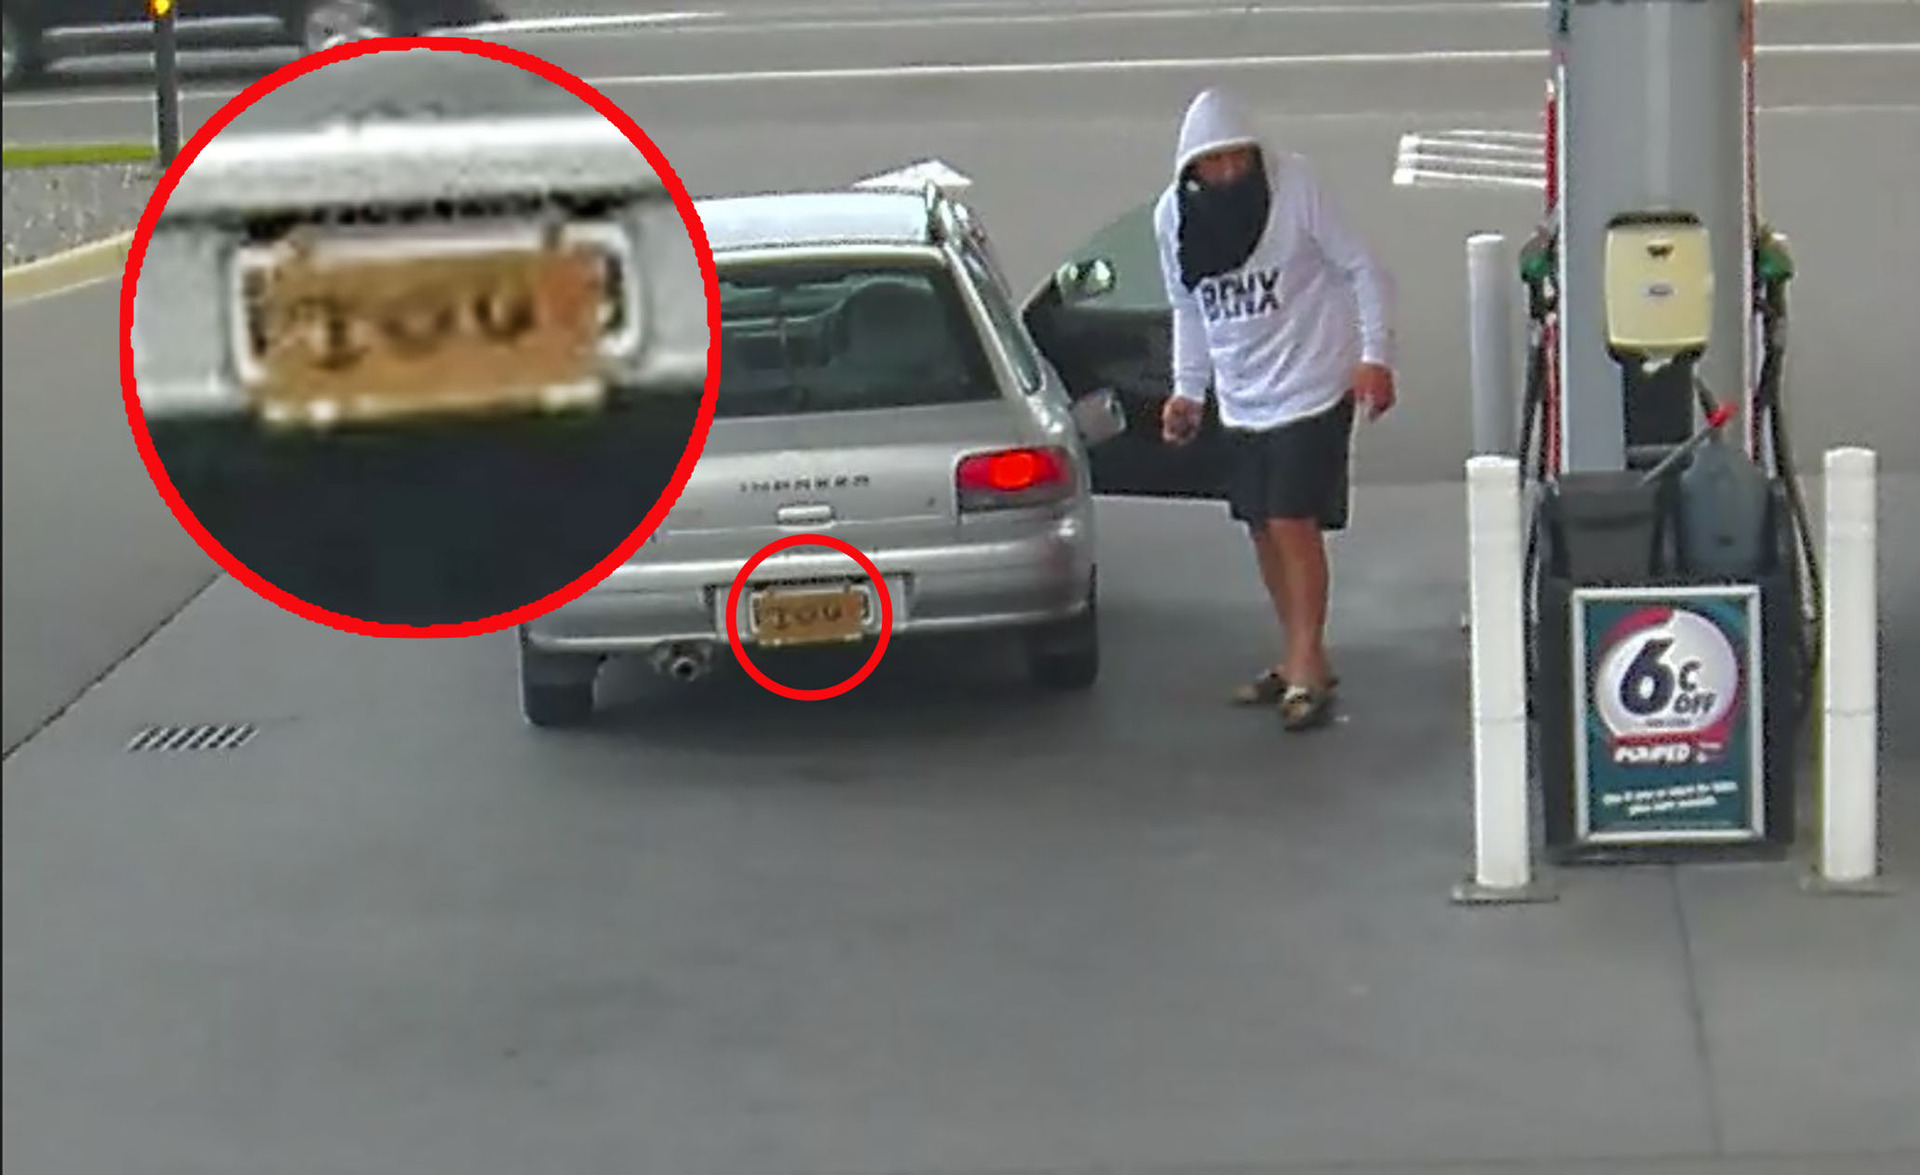 Man's cheeky number plate jibe while stealing petrol